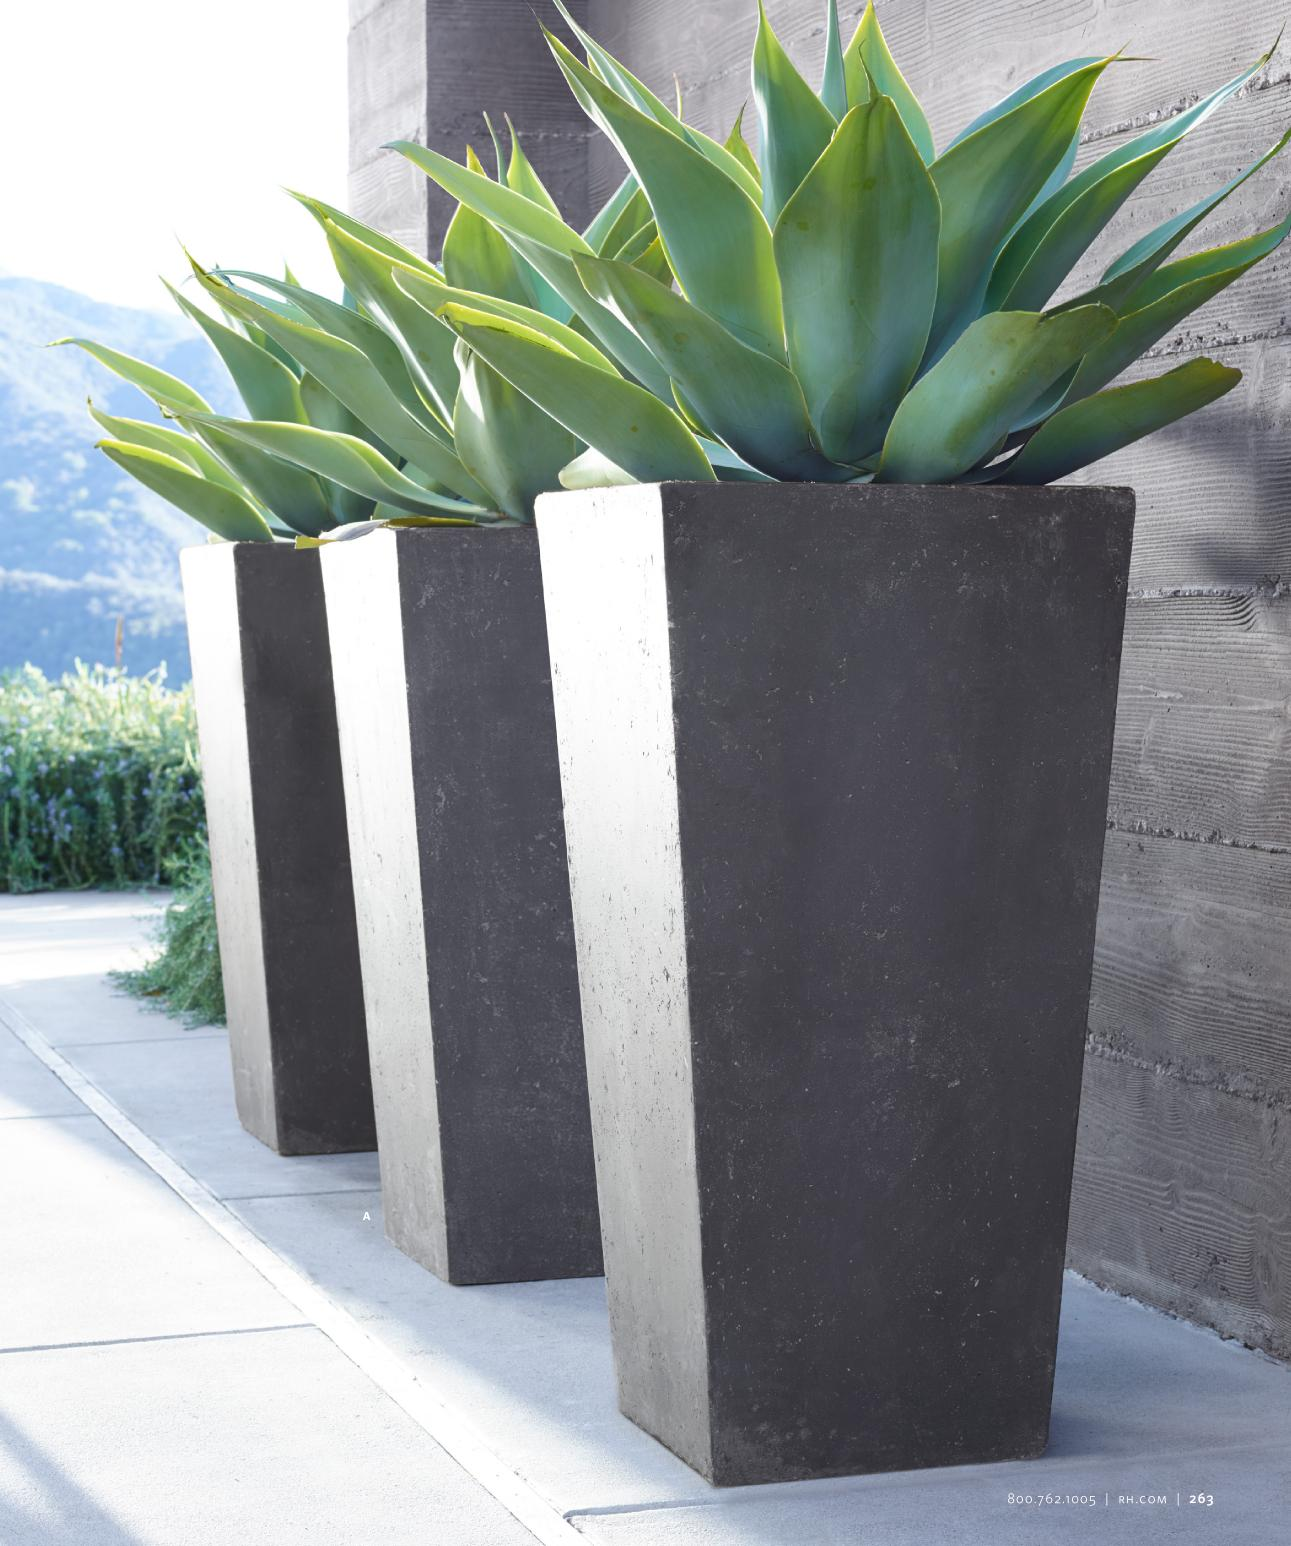 floor vase ceramic with Fabulous Tall Planters For Cool Garden Decoration Ideas on Ceramic Vase Yellow White Gray 10833D additionally Pure Garden Tulip Floral Arrangement With Glass Vase Cream Contemporary Artificial Flower Arrangements additionally Find Beautiful Large Decorative Vases also Las Vegas Convention Center Floor Plan New San Diego Convention Center Floor Plans Upper Level Meeting Rooms together with Ceramic Decorative Column.